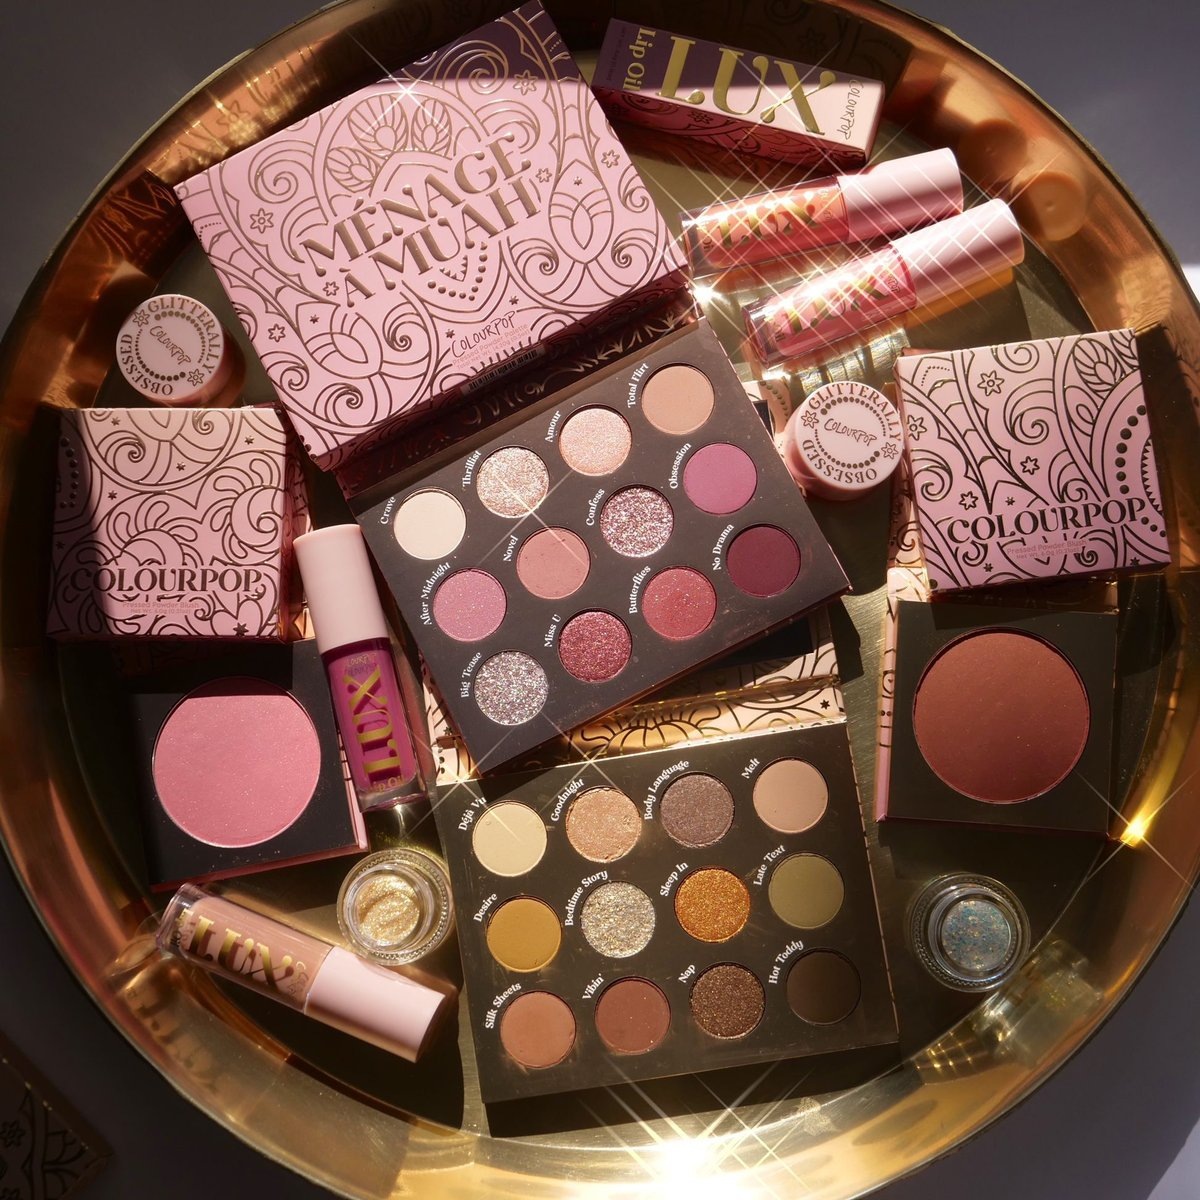 🎁#GIVEAWAY 🎁  Holiday Season is HERE! We are giving away the ENTIRE Amoureux Collection to 5 lucky winners! ✨ Check out IG & FB for another chance to win!   To enter: 🎁Like & RT 🎁Follow @colourpopco  📸: makeup2themaxx